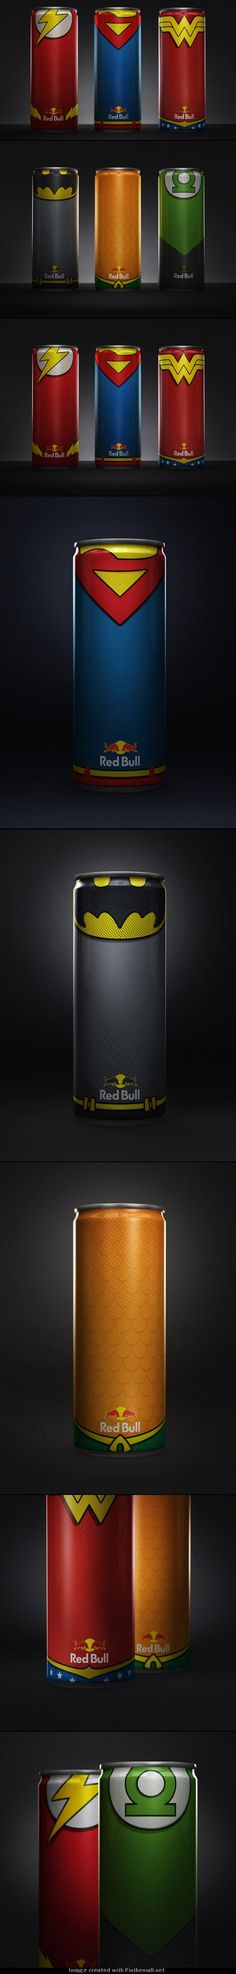 Red Bull League of Justice